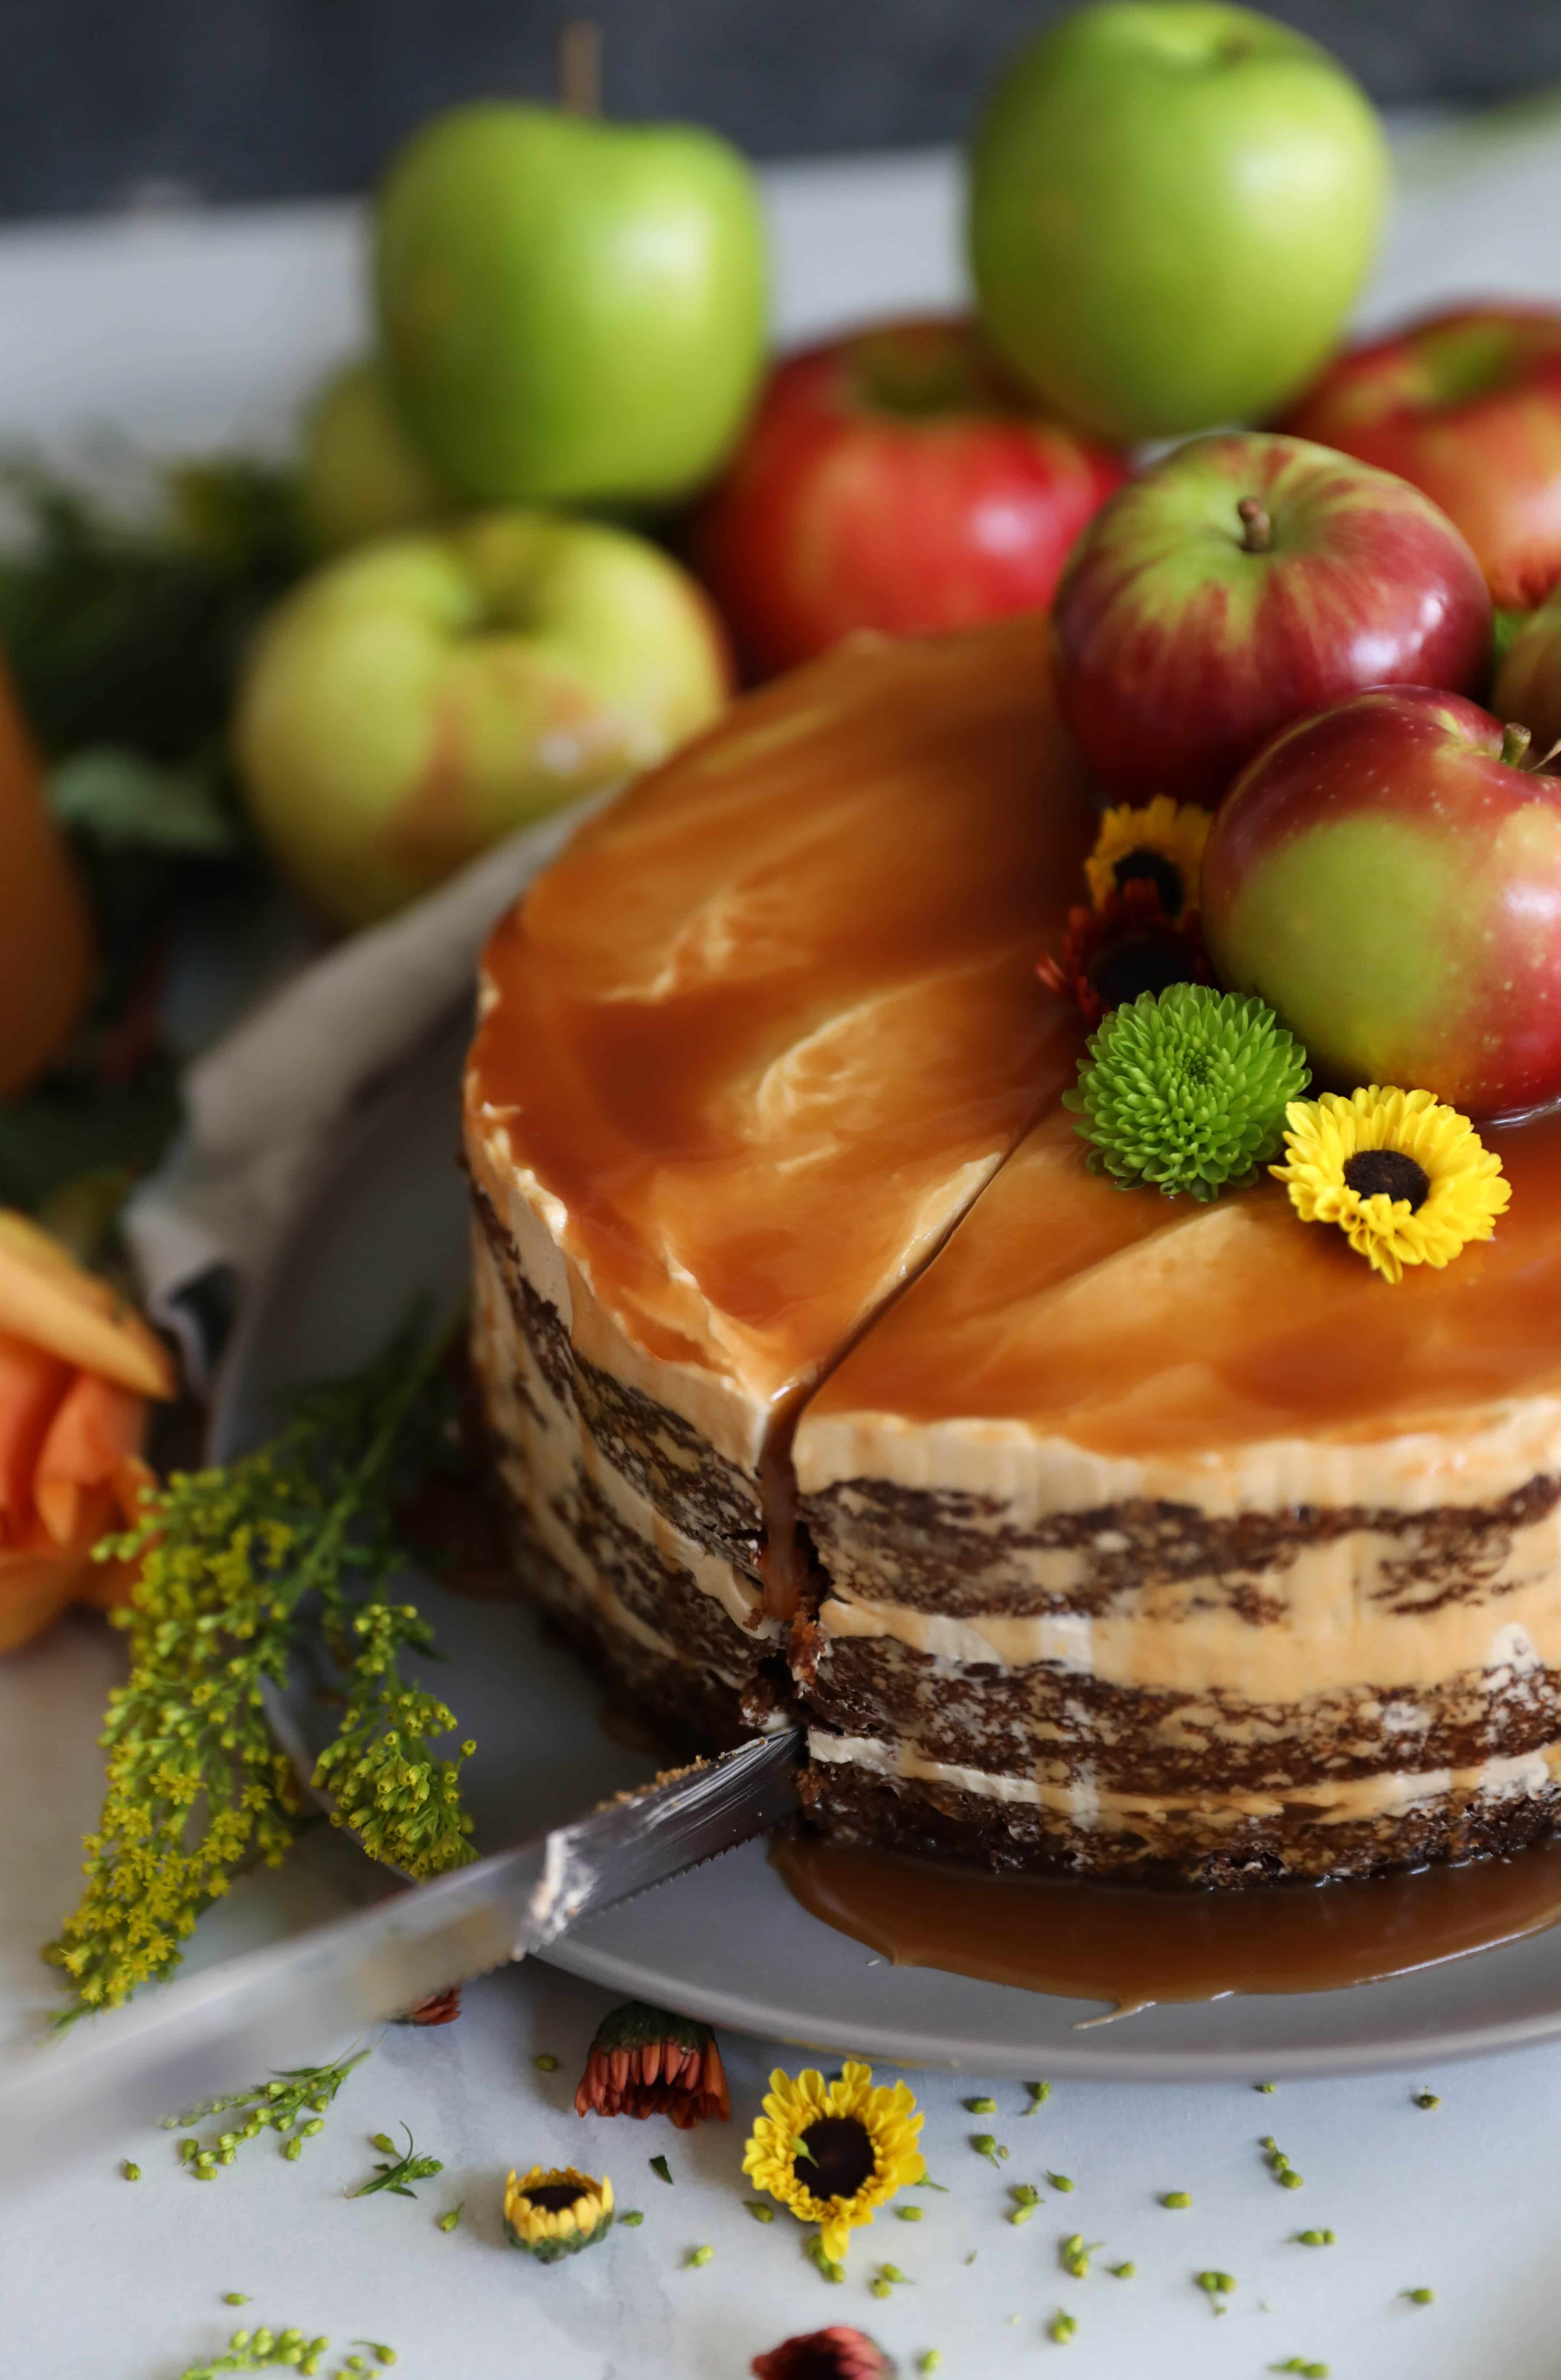 Spiced Apple Cake with Brown Sugar Buttercream and Apple Cider Bourbon Caramel